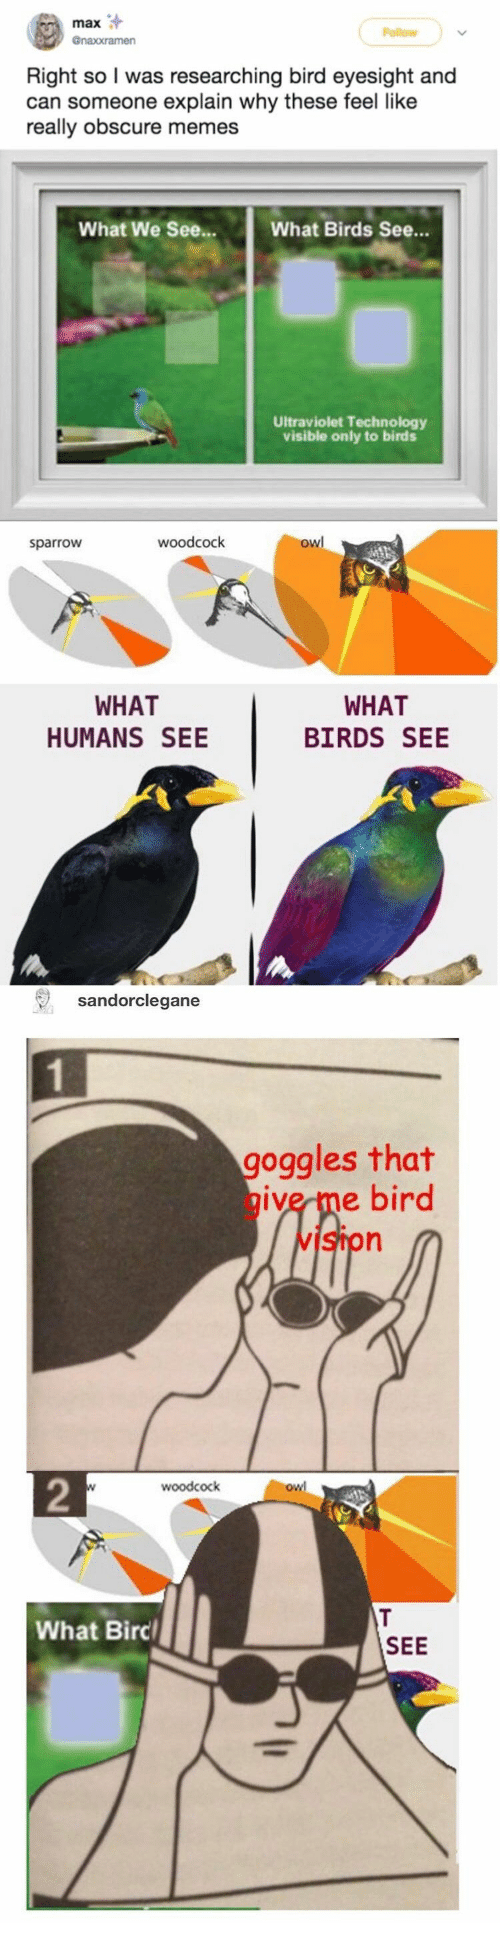 obscure: max  Follow  @naxxramen  Right so I was researching bird eyesight and  can someone explain why these feel like  really obscure memes  What We See...  What Birds See...  Ultraviolet Technology  visible only to birds  owl  woodcock  sparrow  WHAT  WHAT  HUMANS SEE  BIRDS SEE  sandorclegane  goggles that  give me bird  vIston  2  woodcock  owl  T  What Birc  SEE